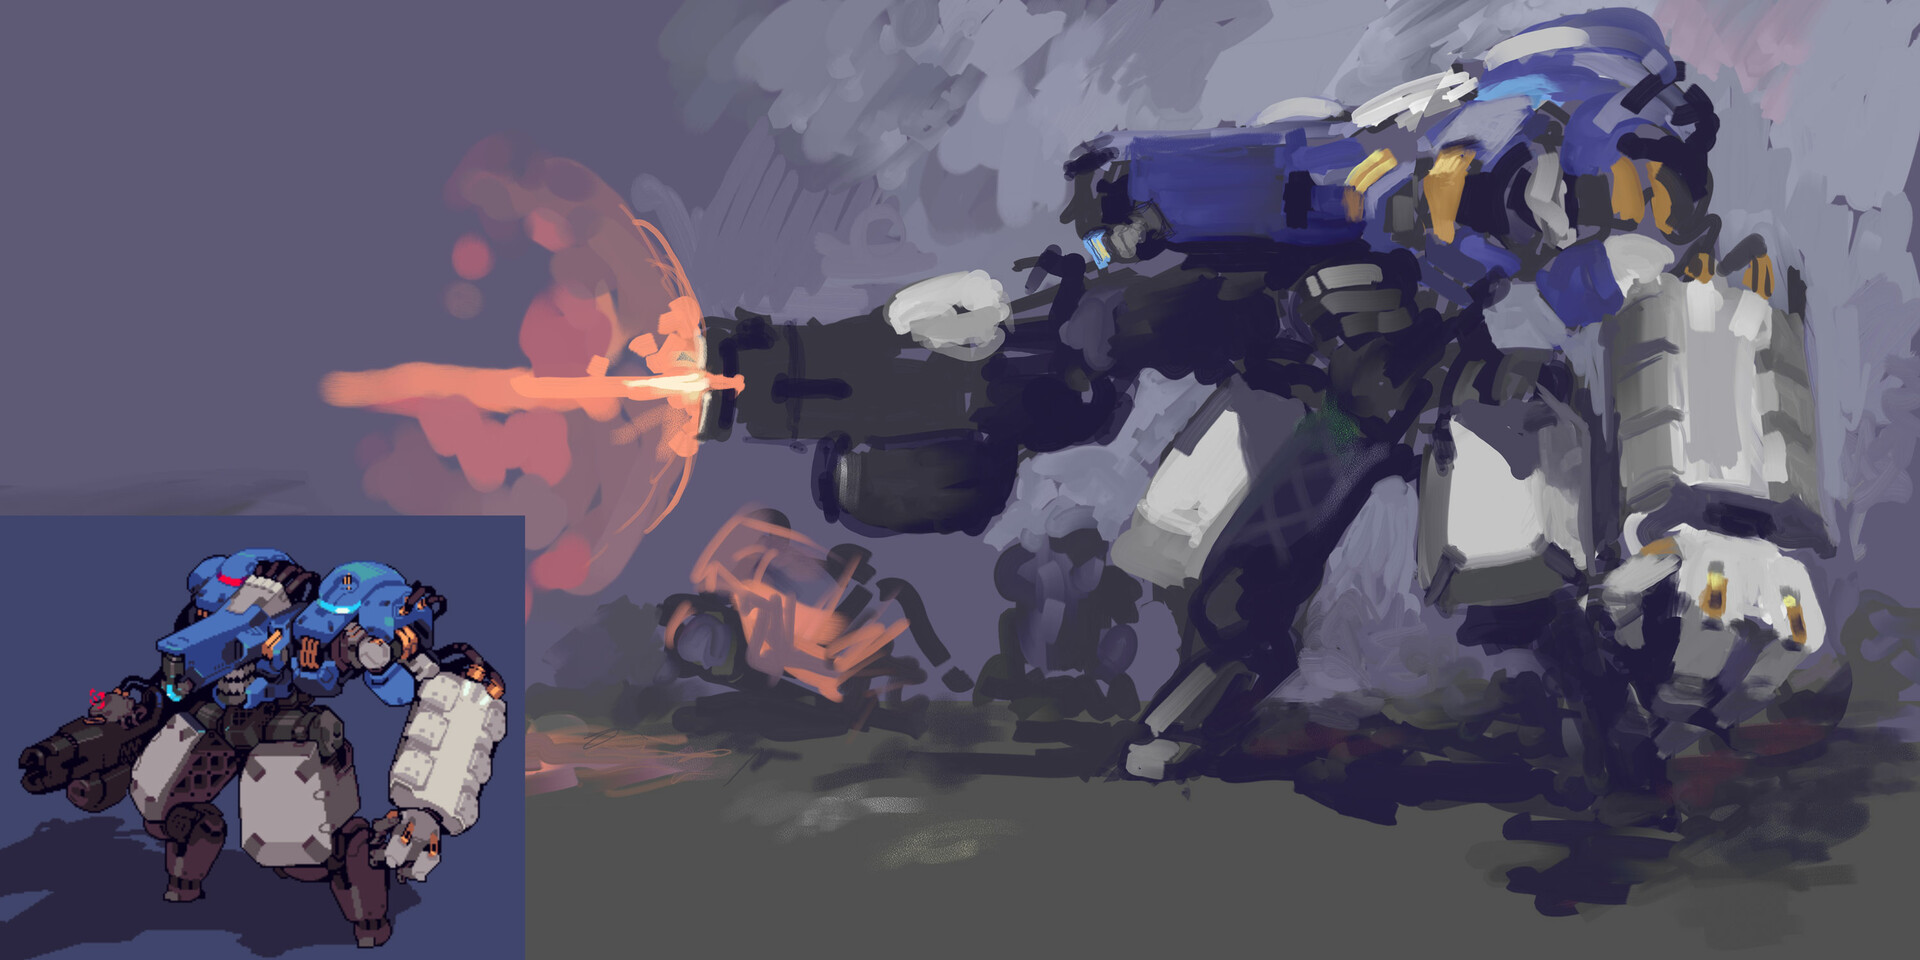 The superb pixel artist MimicMango on Twitter was curious what one of his mech designs would look like interpreted by me, so I did this painterly sketch.